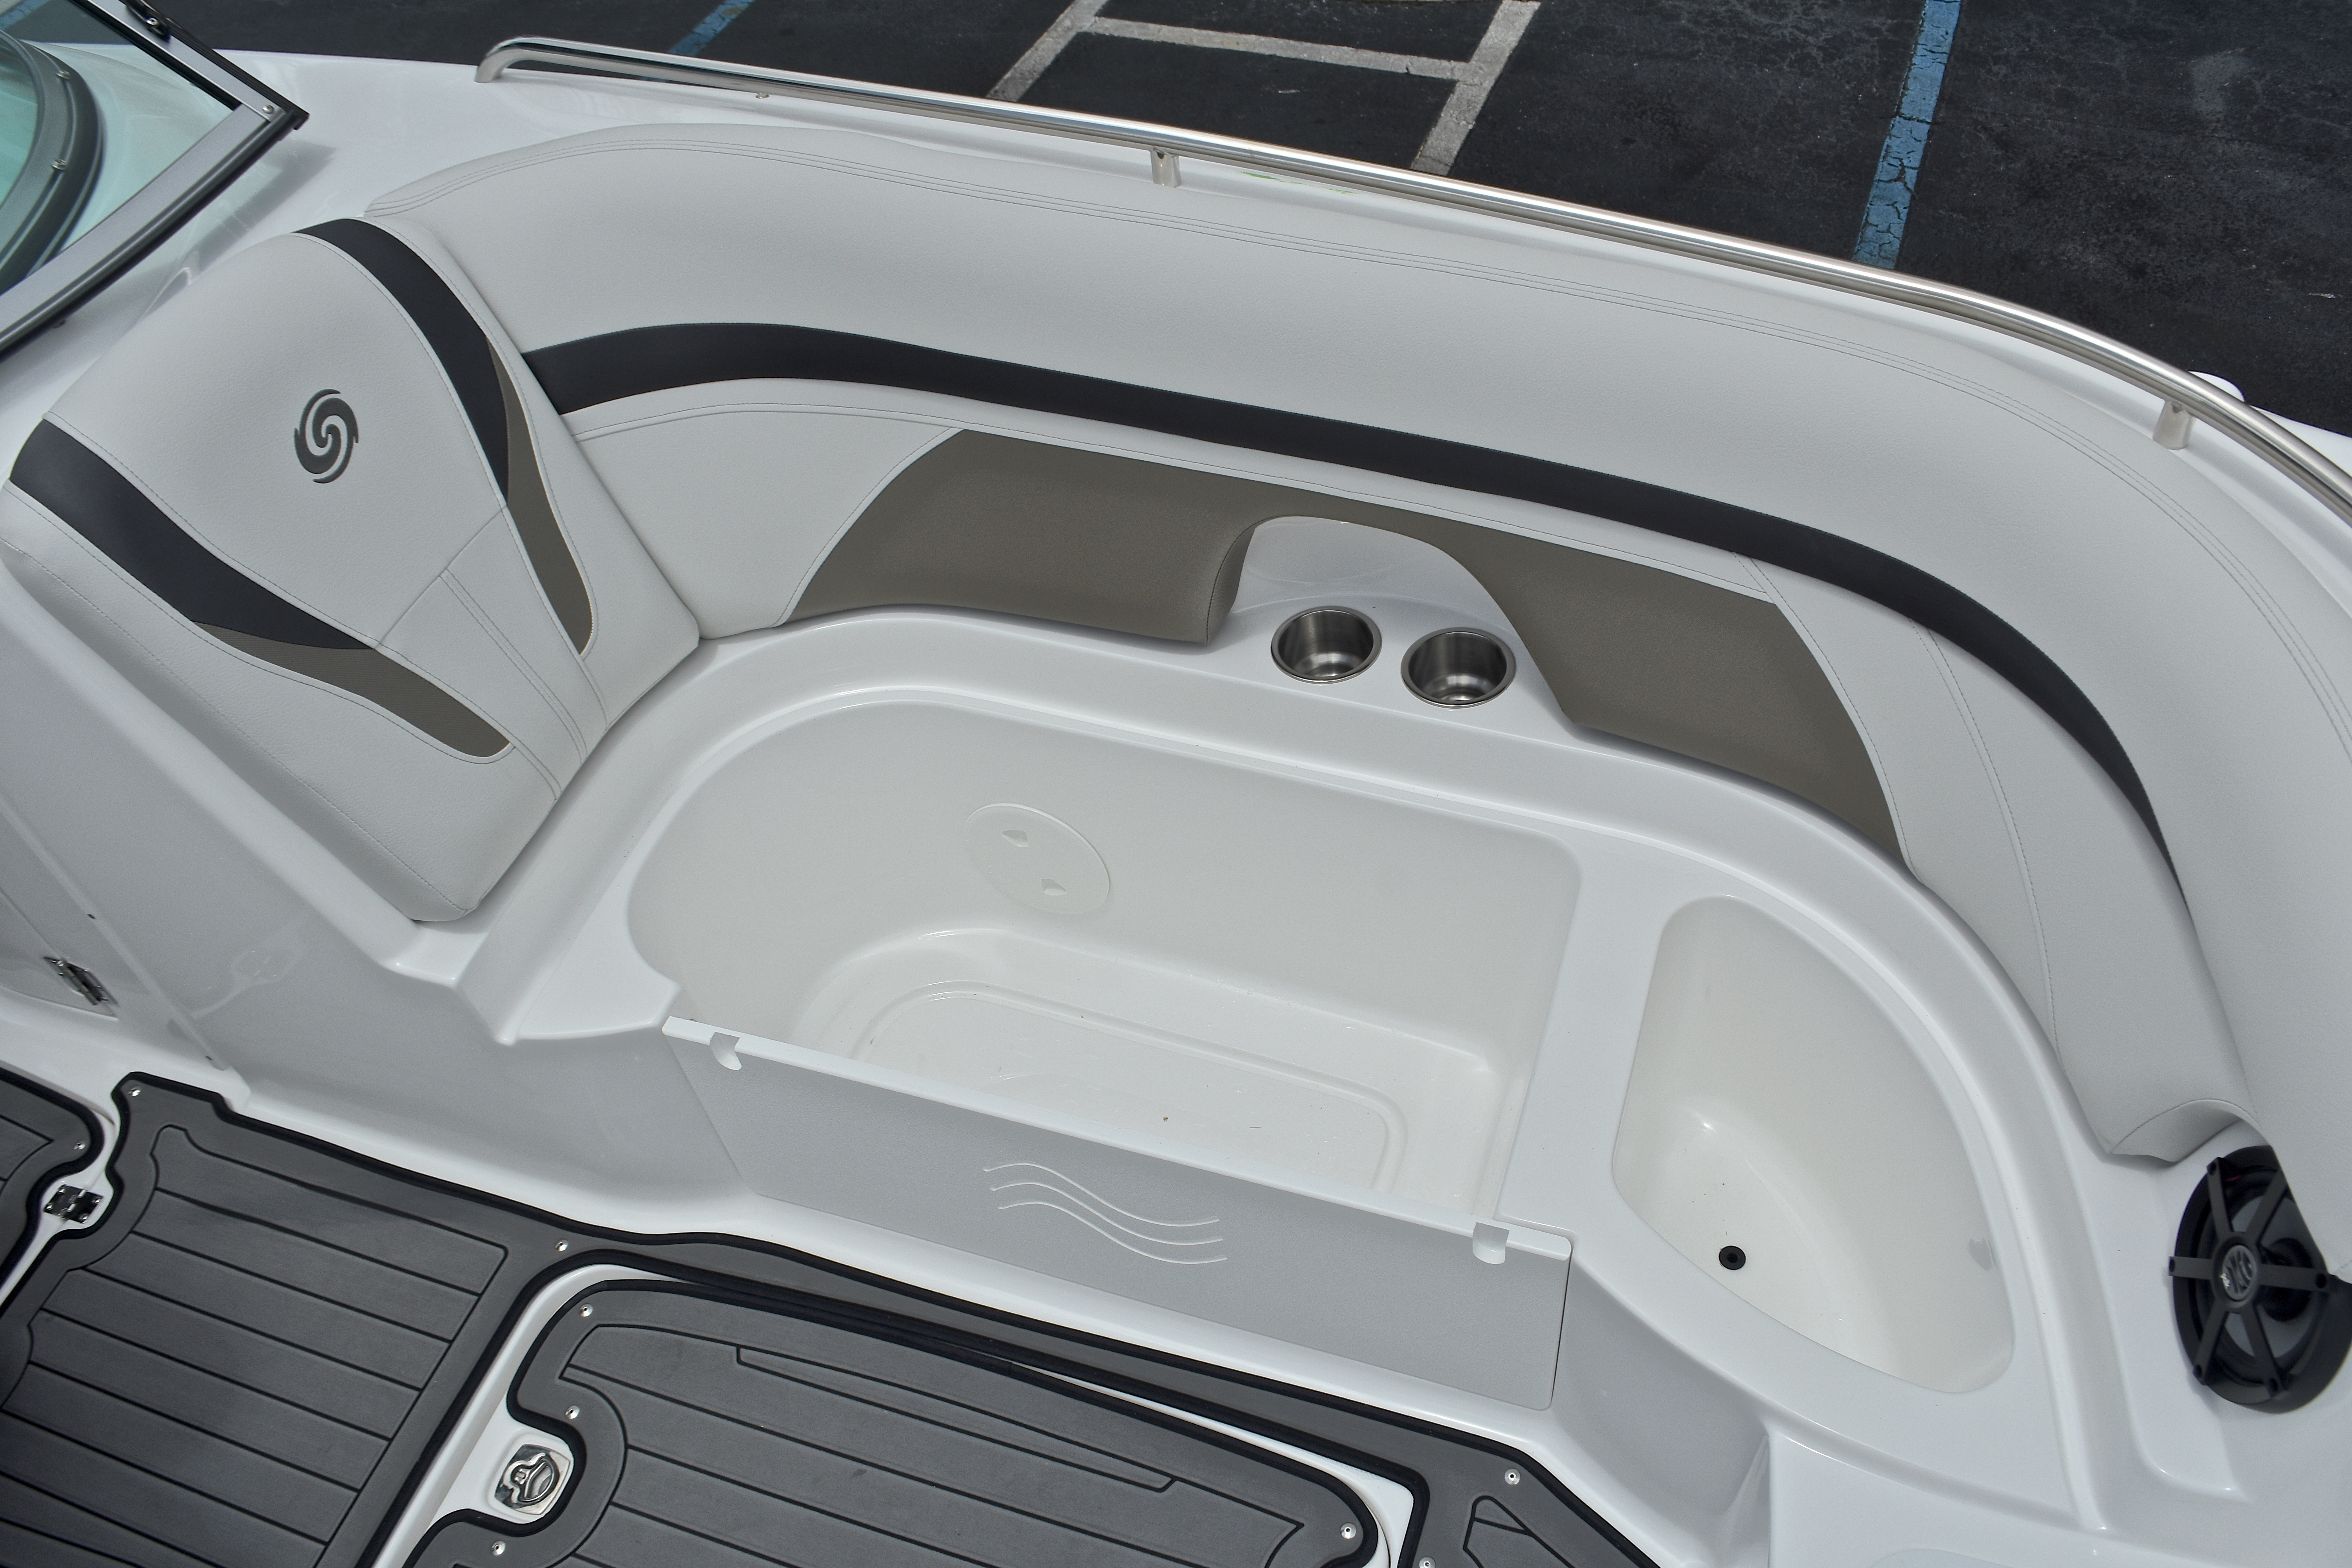 Thumbnail 59 for New 2017 Hurricane SunDeck SD 2400 OB boat for sale in West Palm Beach, FL